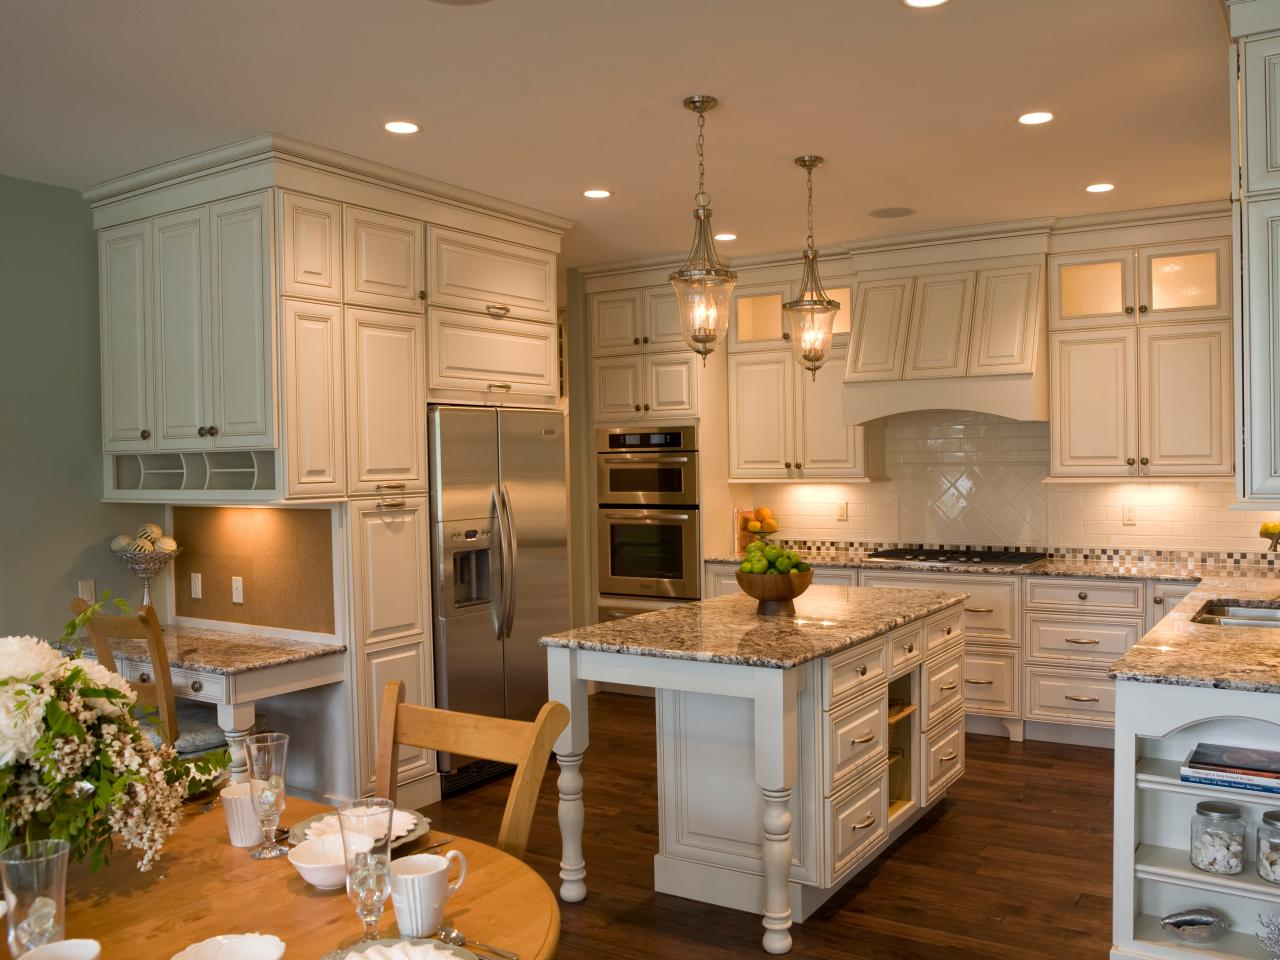 U shaped kitchens hgtv for David james kitchen designs